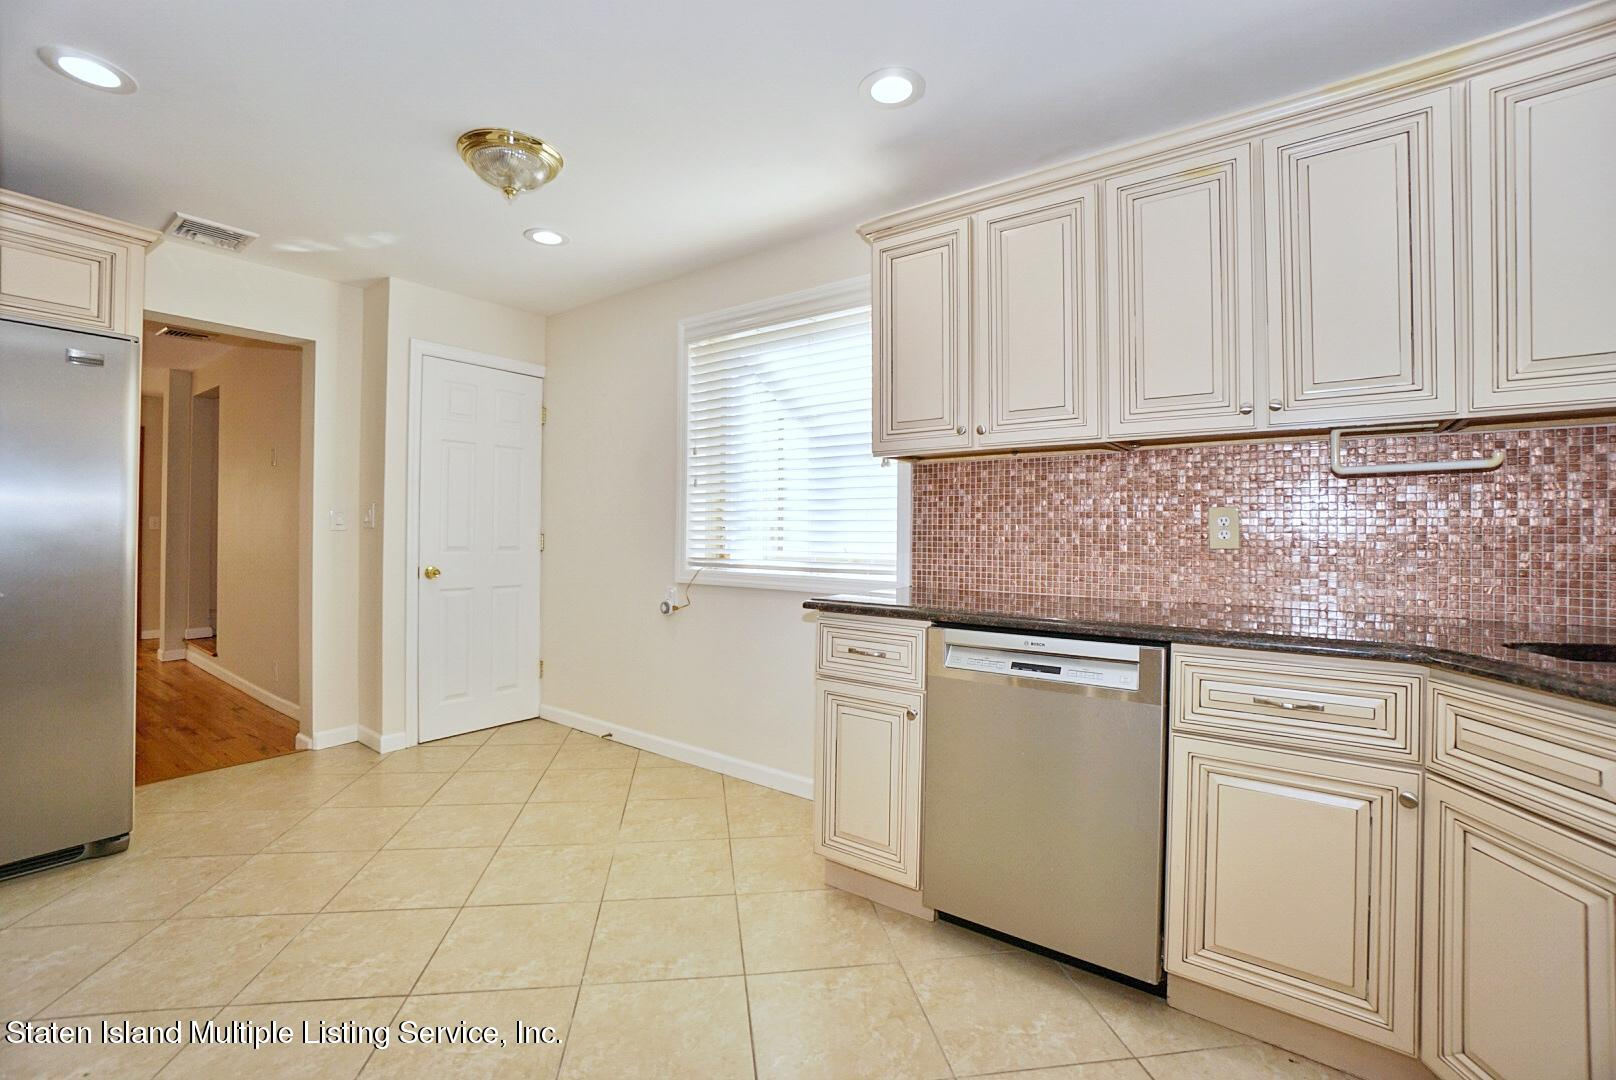 Single Family - Detached 97 Knox Place  Staten Island, NY 10314, MLS-1143147-4